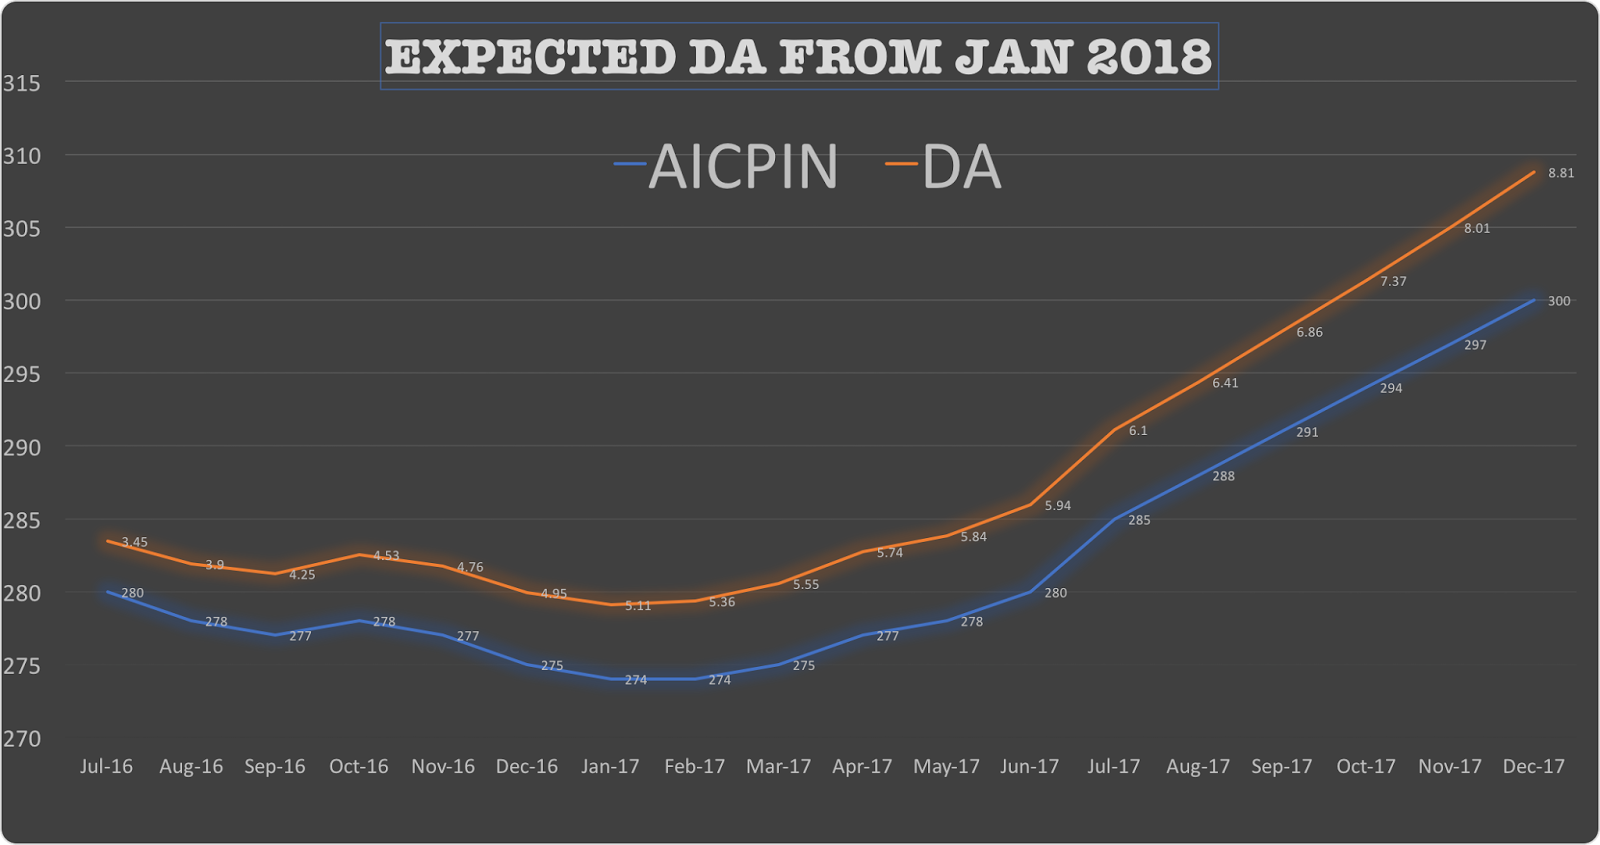 EXPECTED-DA-JAN-2018